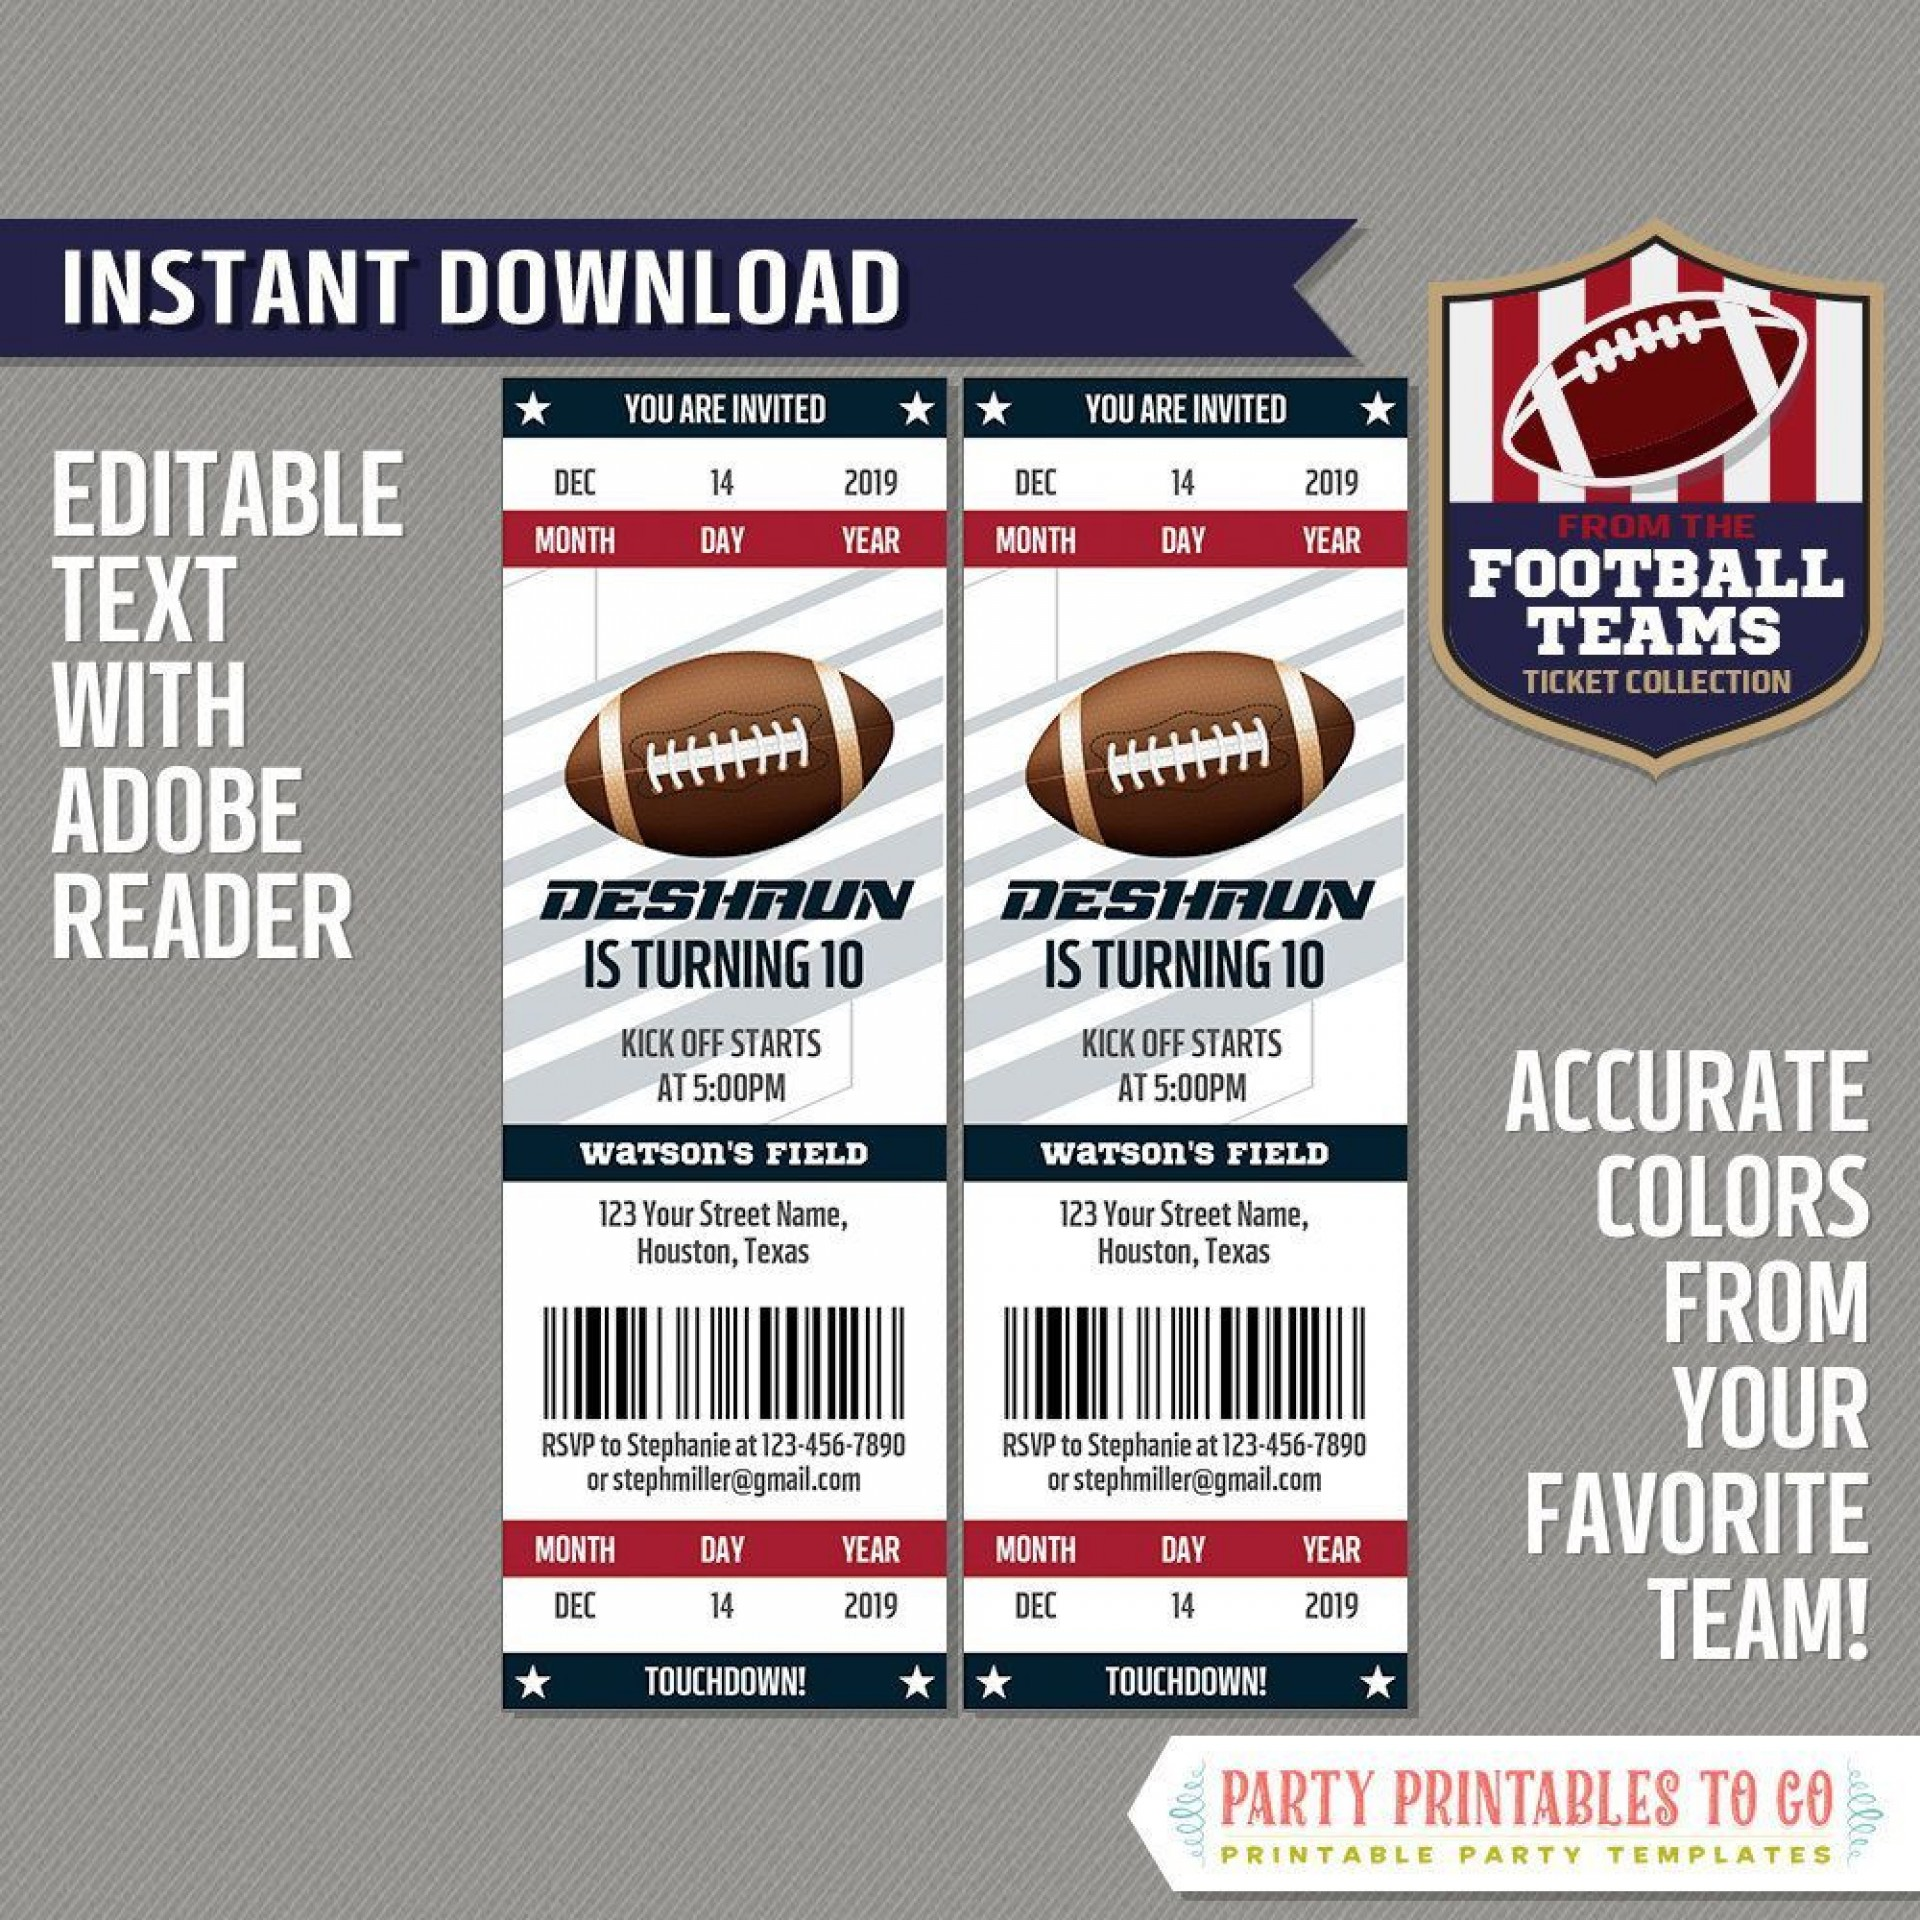 005 Wonderful Football Ticket Invitation Template Free High Definition  Printable Party Download1920